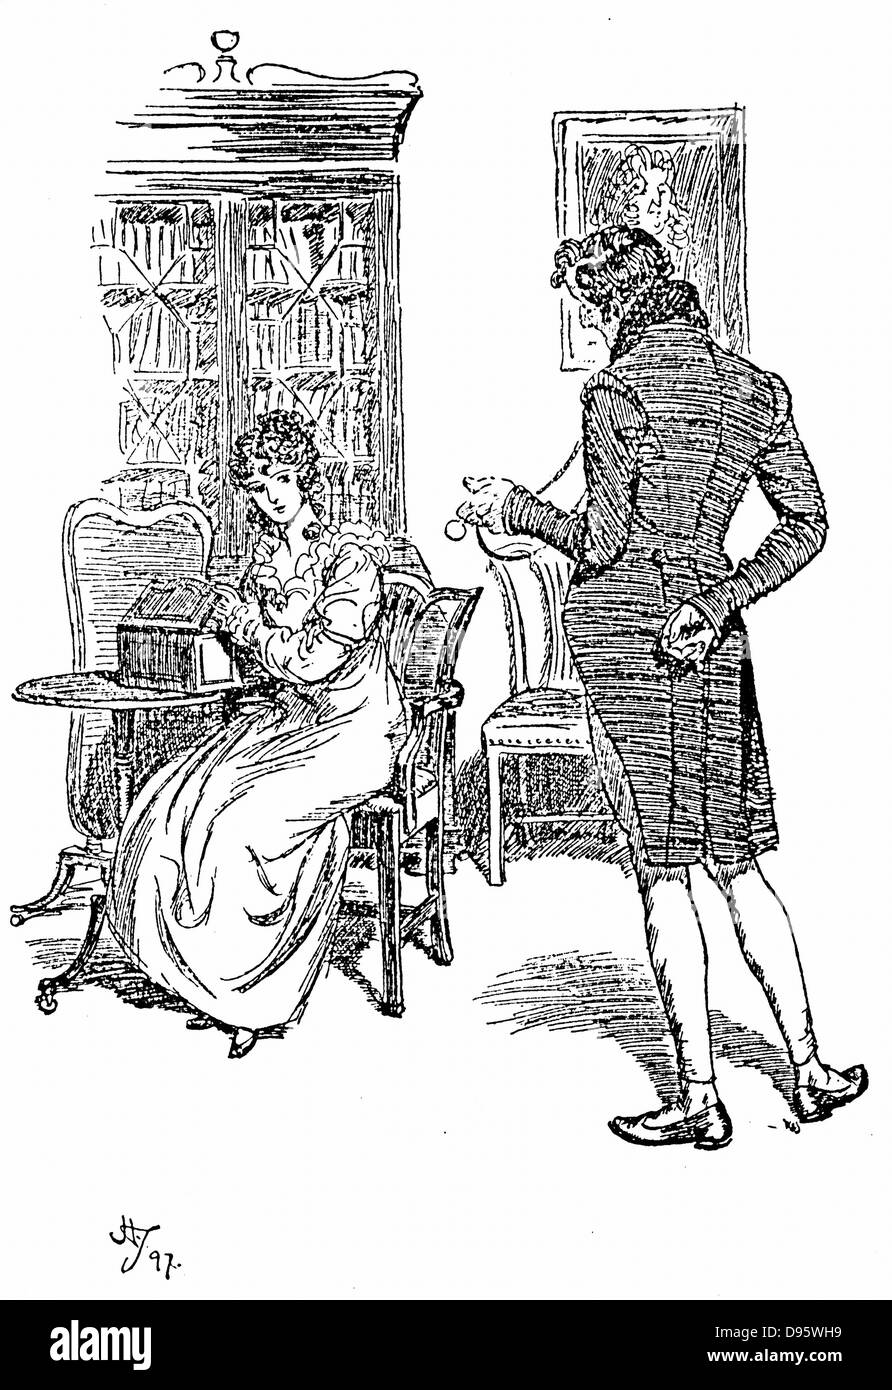 Jane Austen 'Persuasion'. Austen's last novel published 1818. Anne Elliot complimented by her cousin - Stock Image